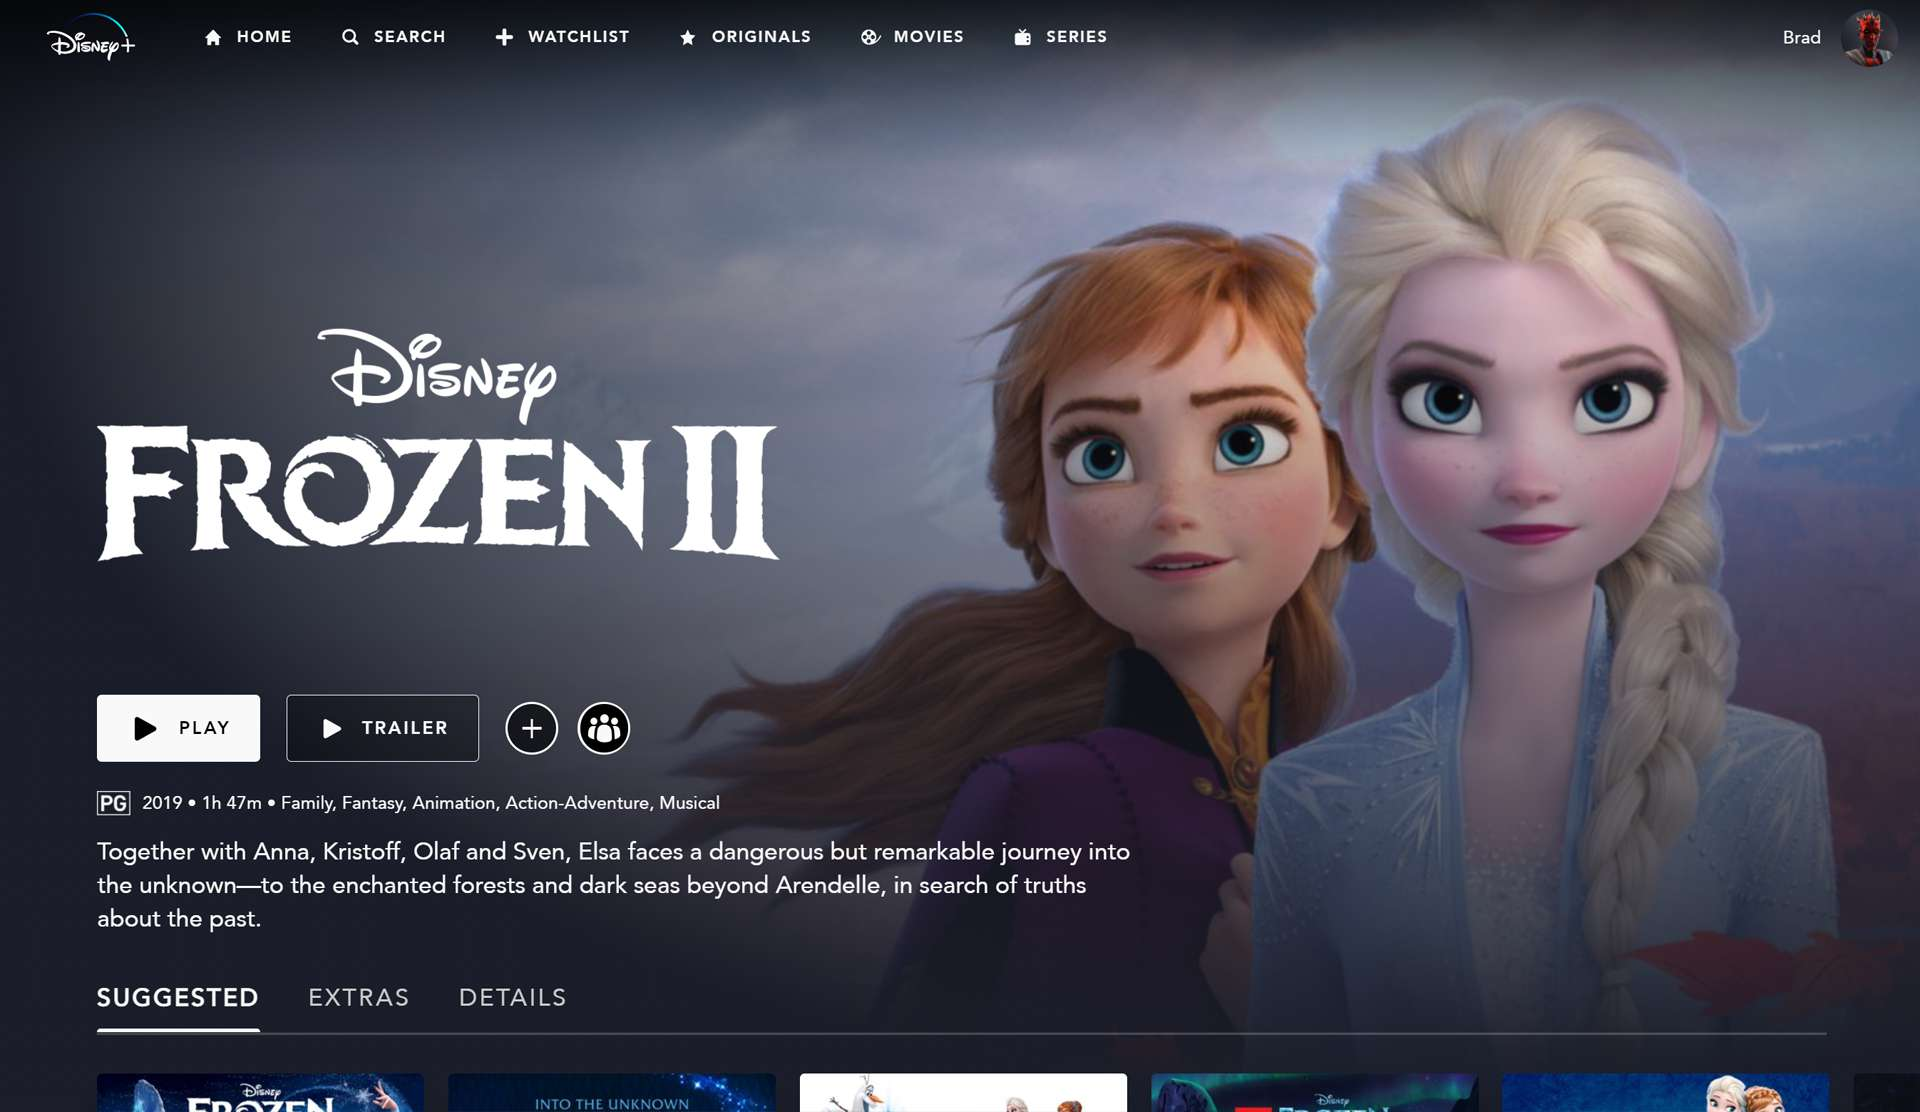 Frozen, Frozen II, and other family movies on Disney Plus.